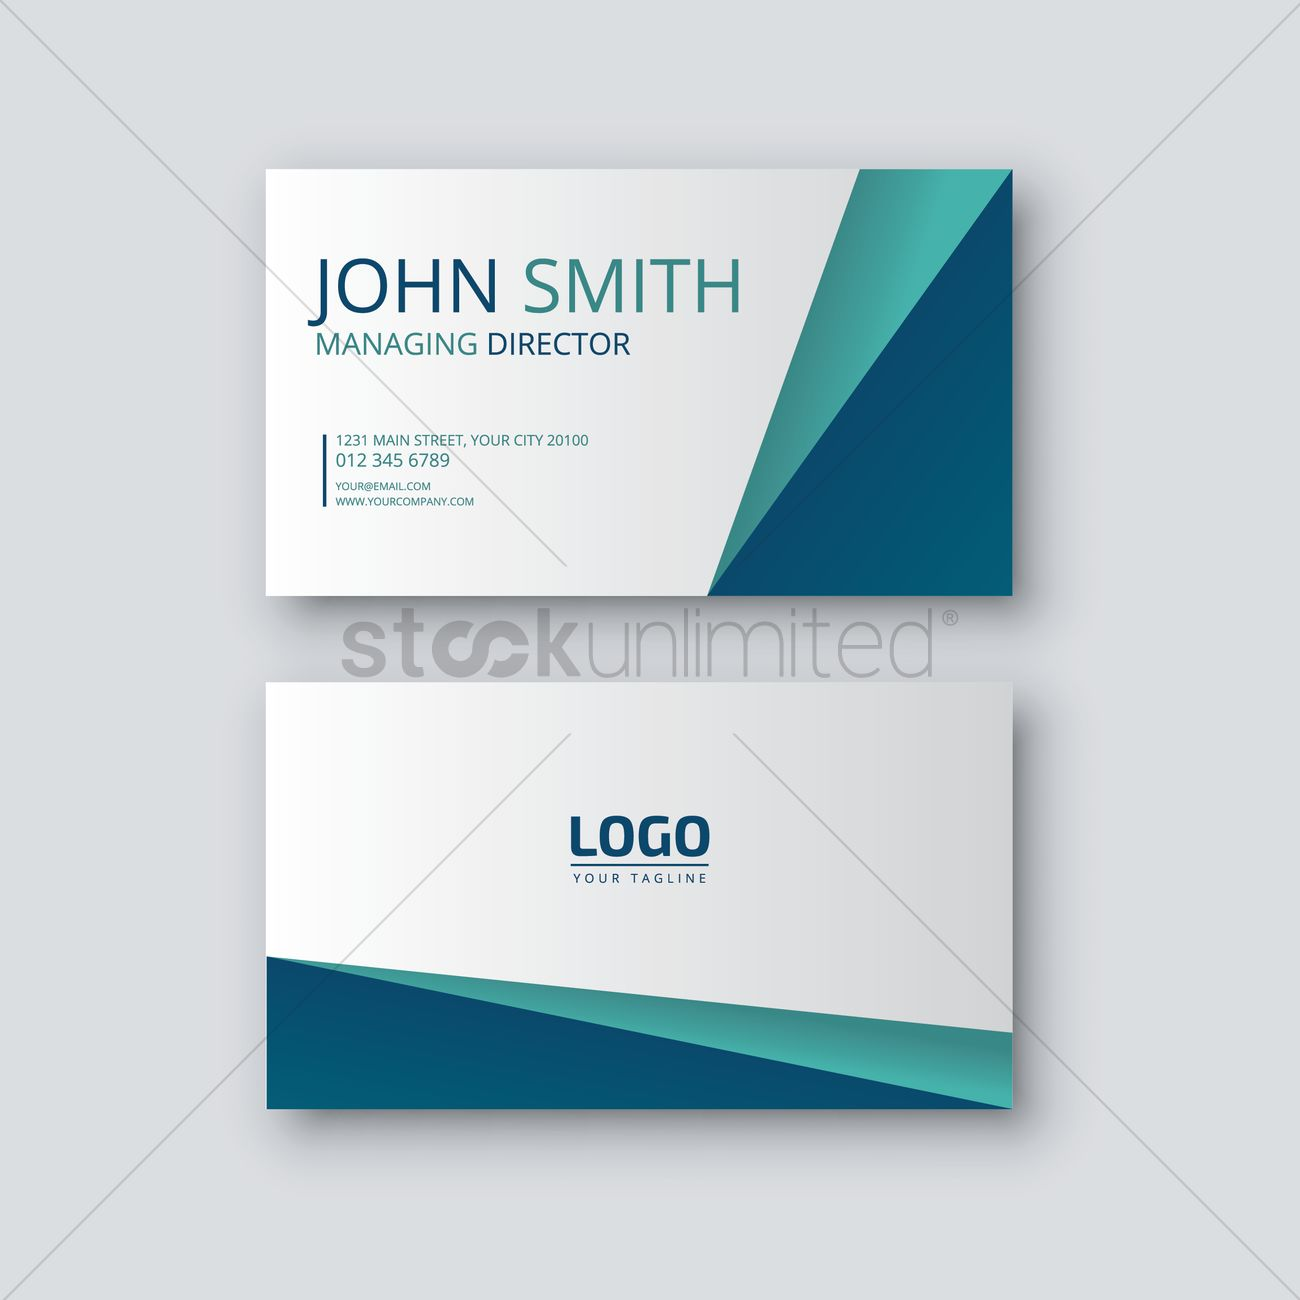 visiting card vector image 1823276 stockunlimited